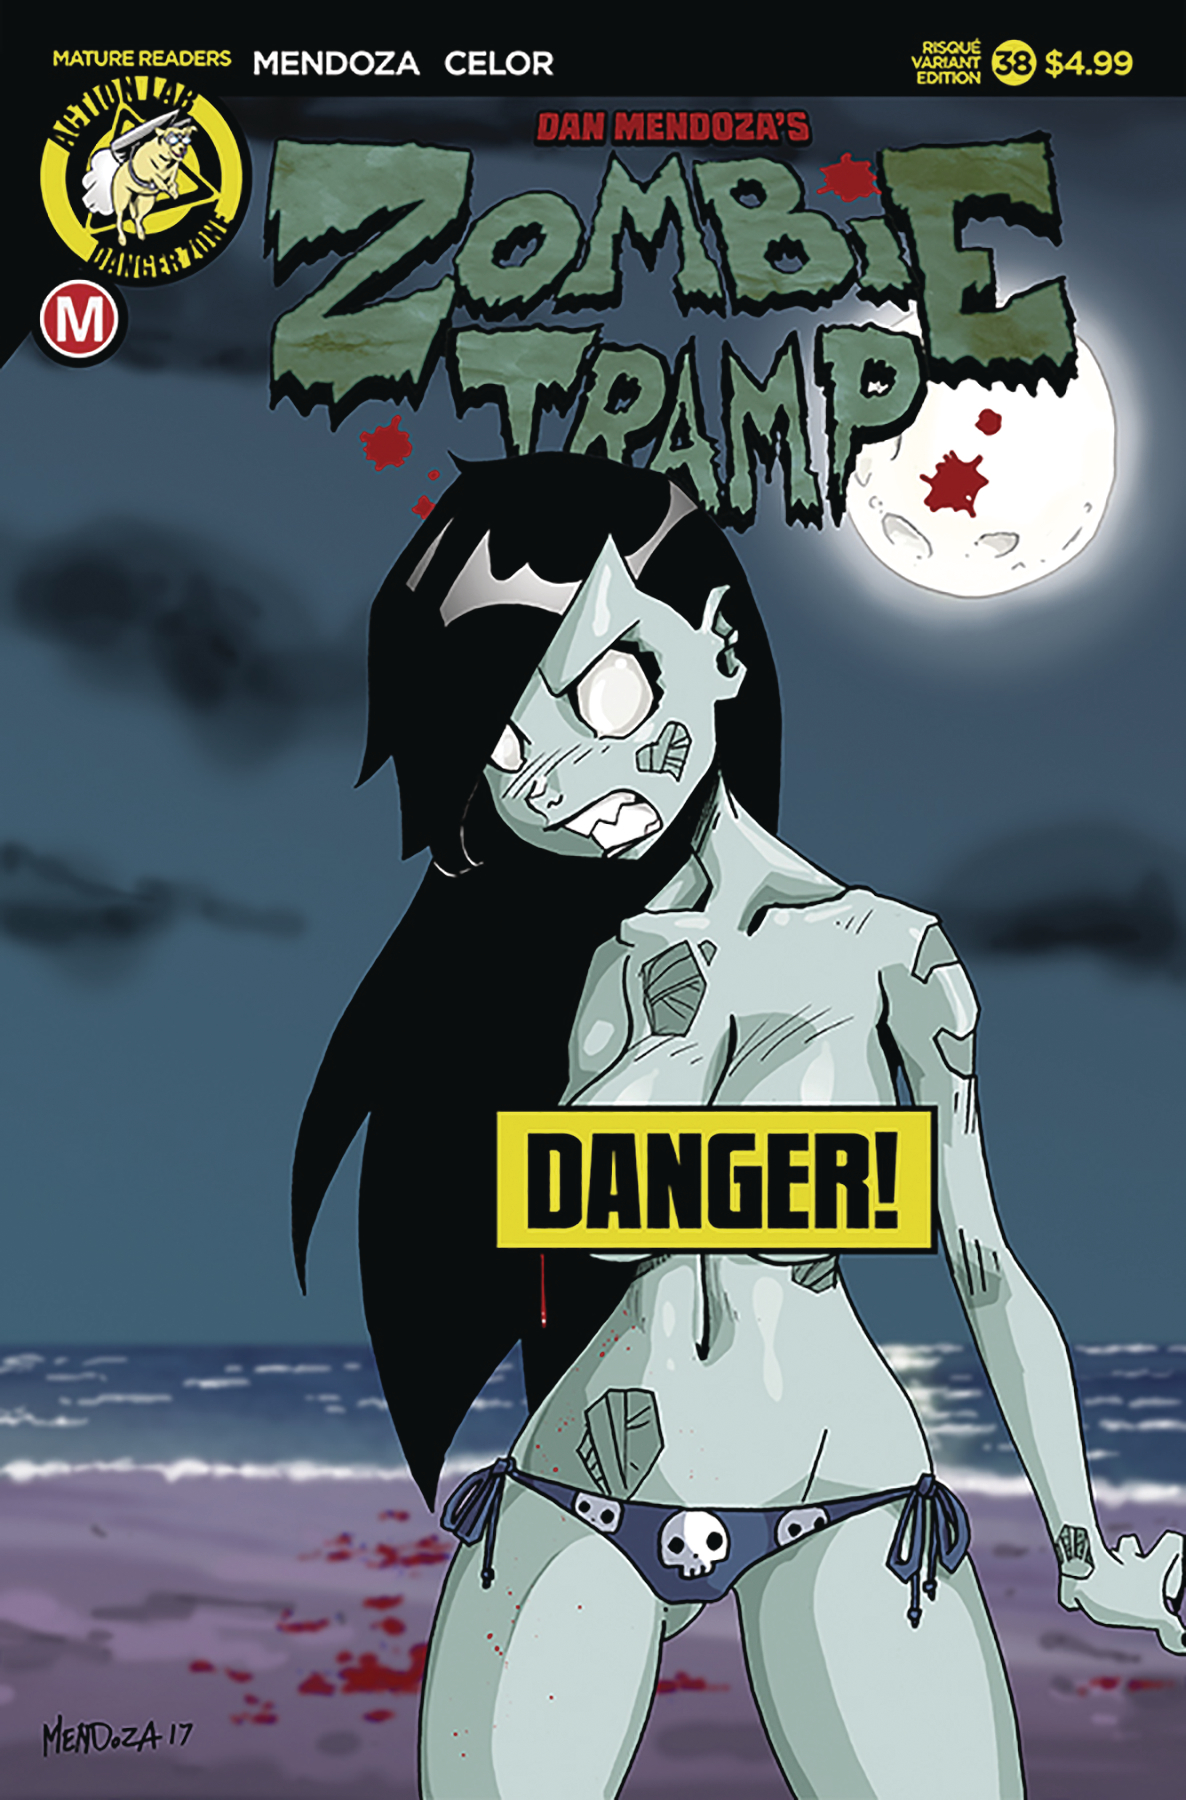 ZOMBIE TRAMP ONGOING #38 CVR B MENDOZA RISQUE (MR)